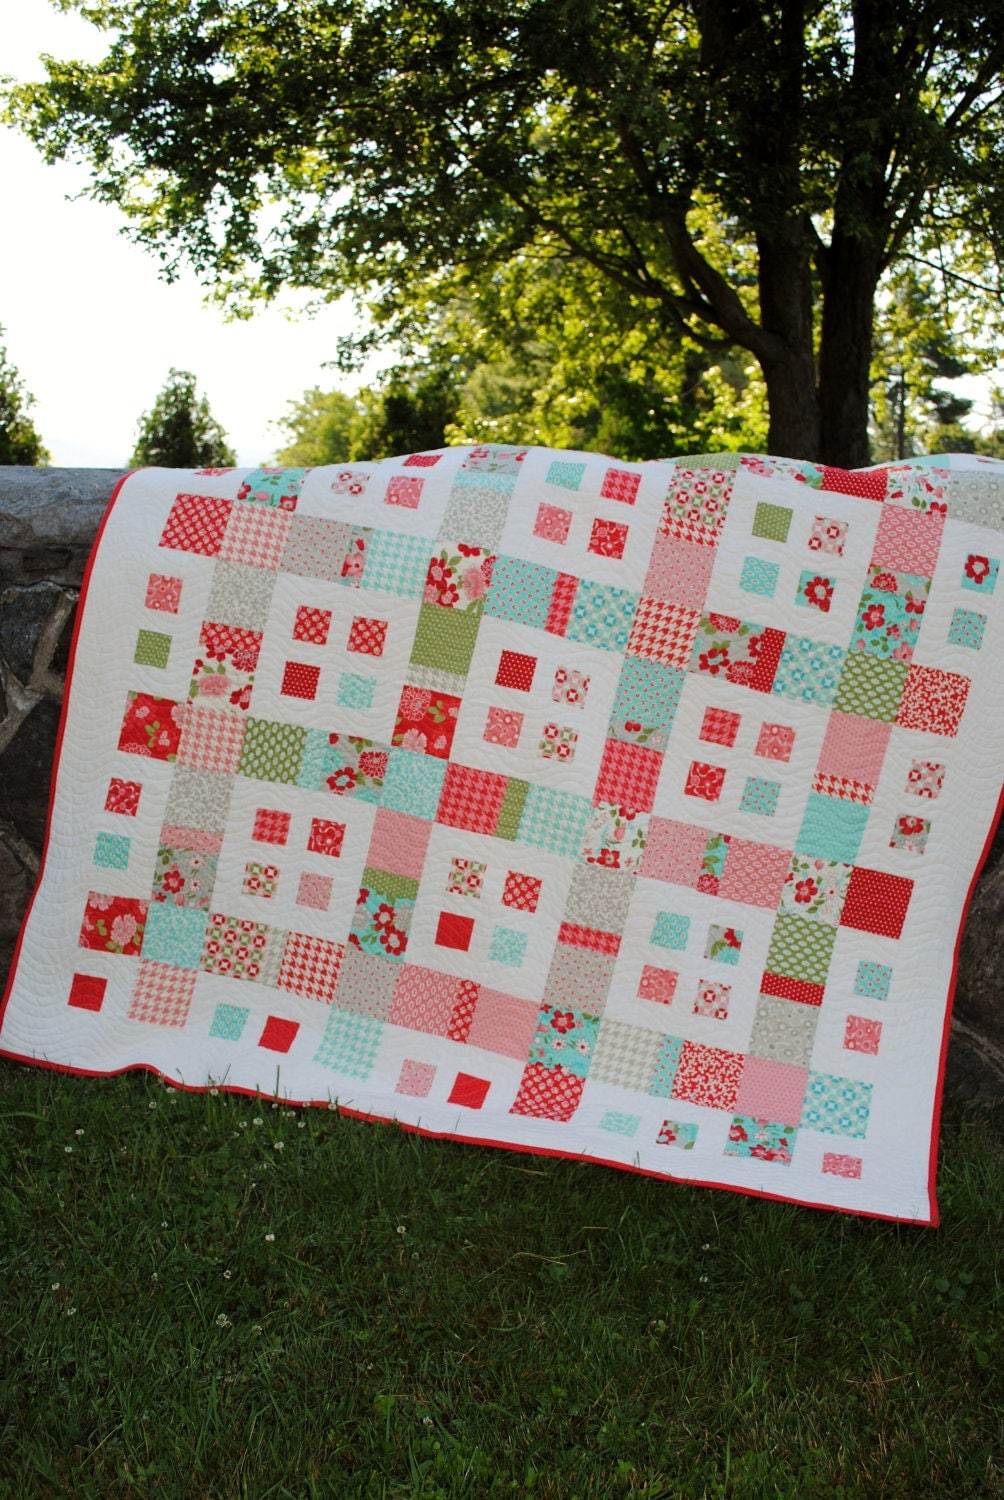 QUILT PATTERN Layer Cake, Charm Squares or Fat Quarters QUICK and ... : fat quarters for quilting - Adamdwight.com